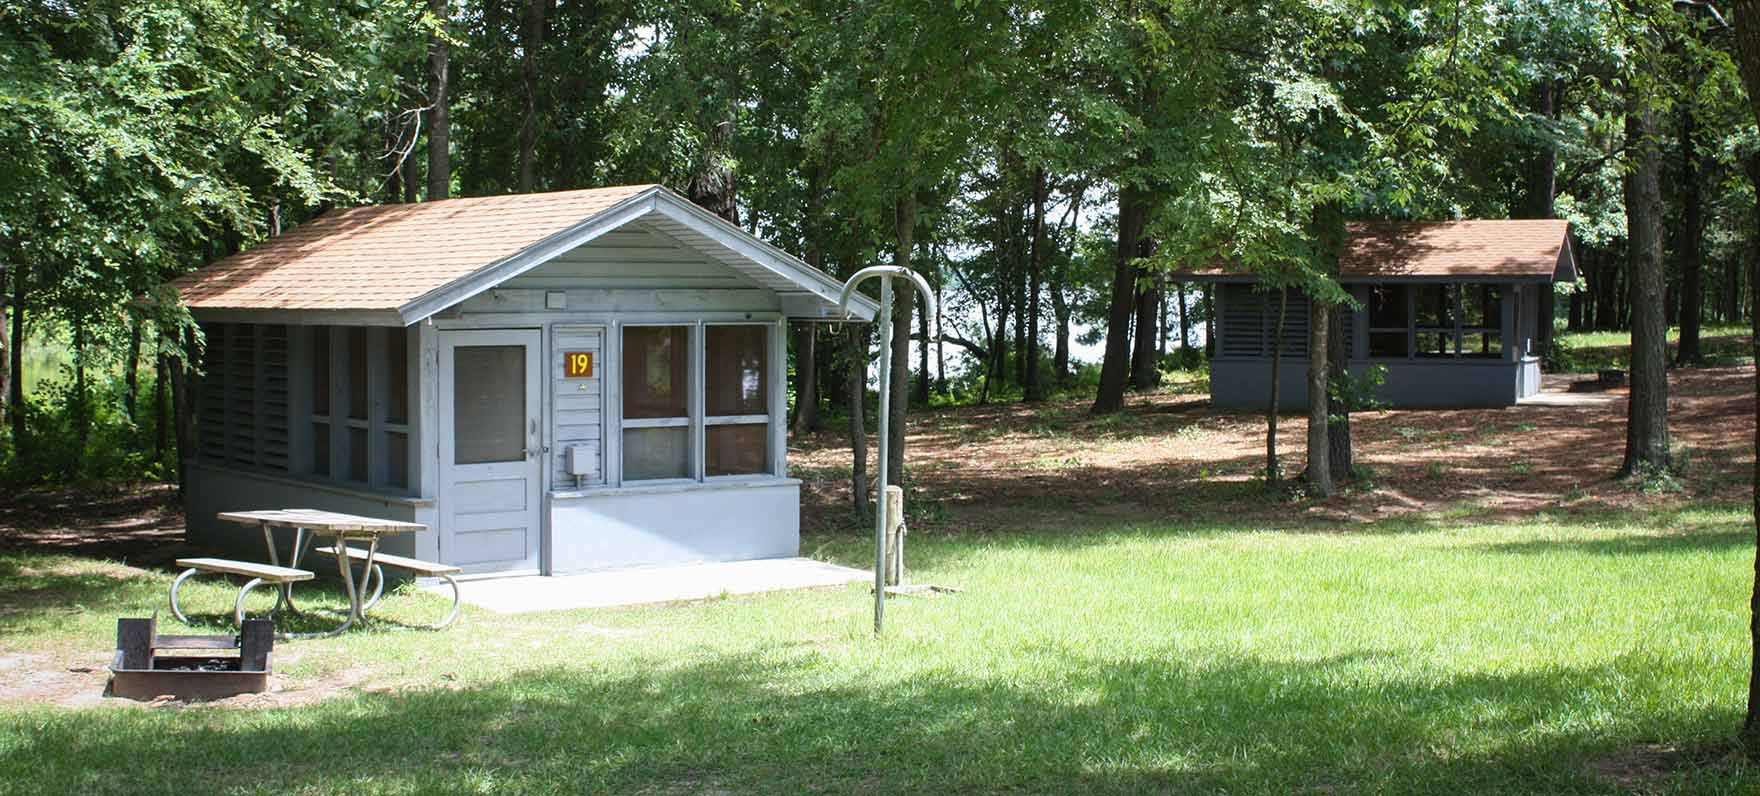 Martin creek lake state park texas parks wildlife for Fishing cabins in texas